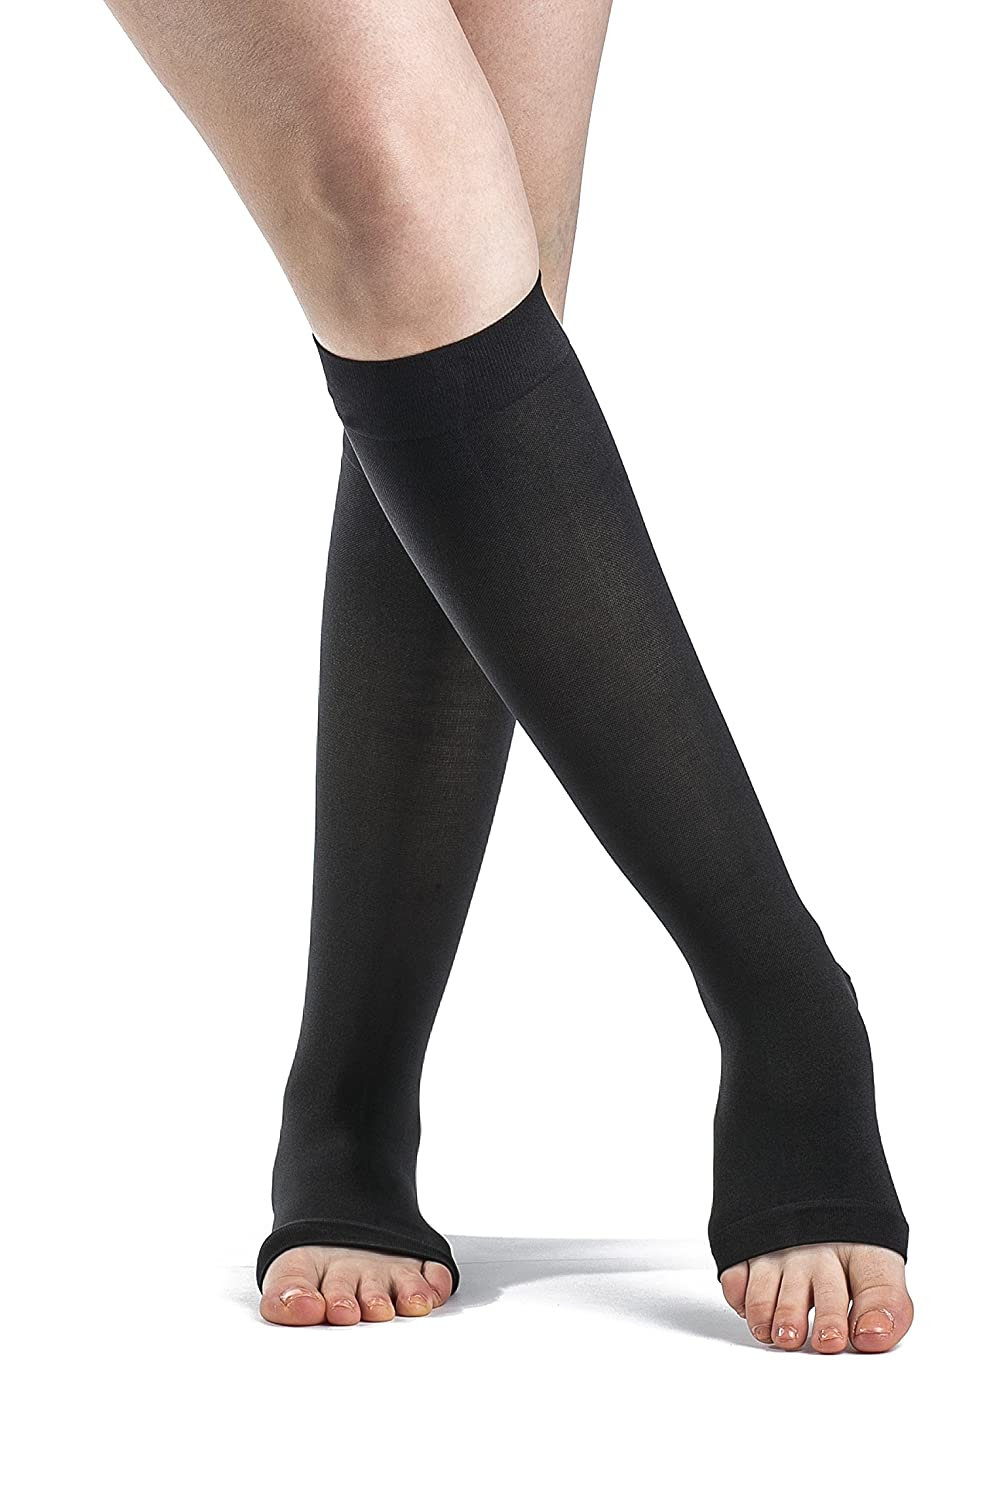 Amazon.com: SIGVARIS Womens EVERSHEER 780 Open Toe Calf Compression Socks 15-20mmHg: Health & Personal Care